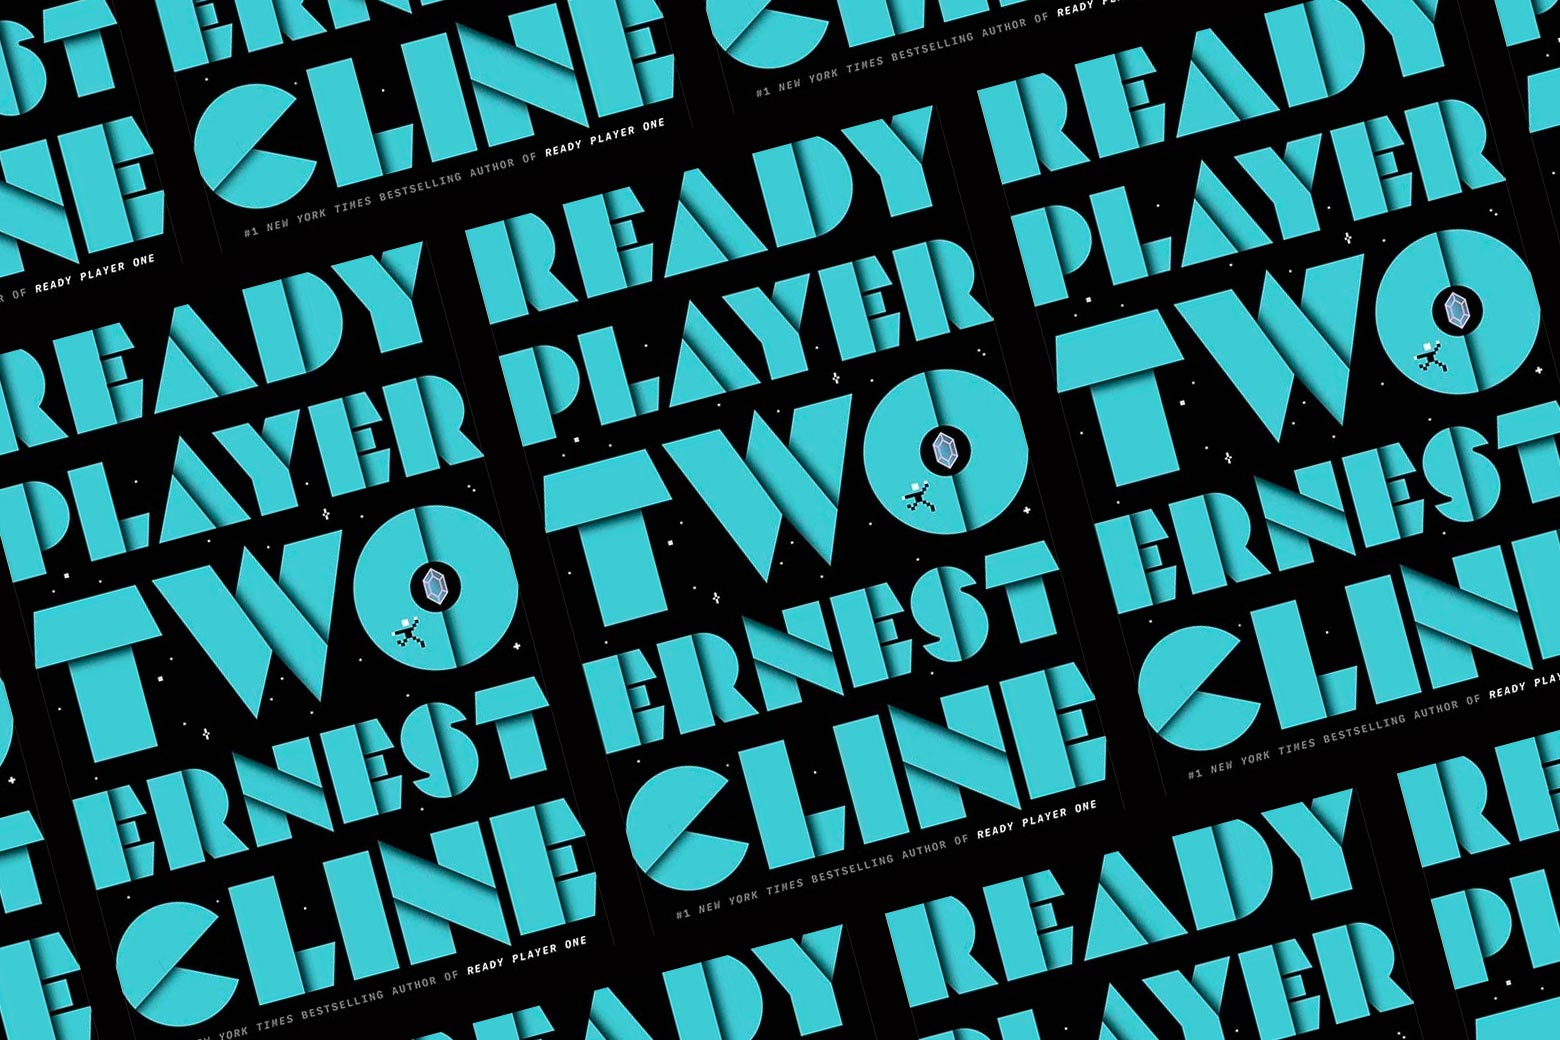 slate.com - Laura Hudson - Ready Player Two Is a Horror Story but Doesn't Know It